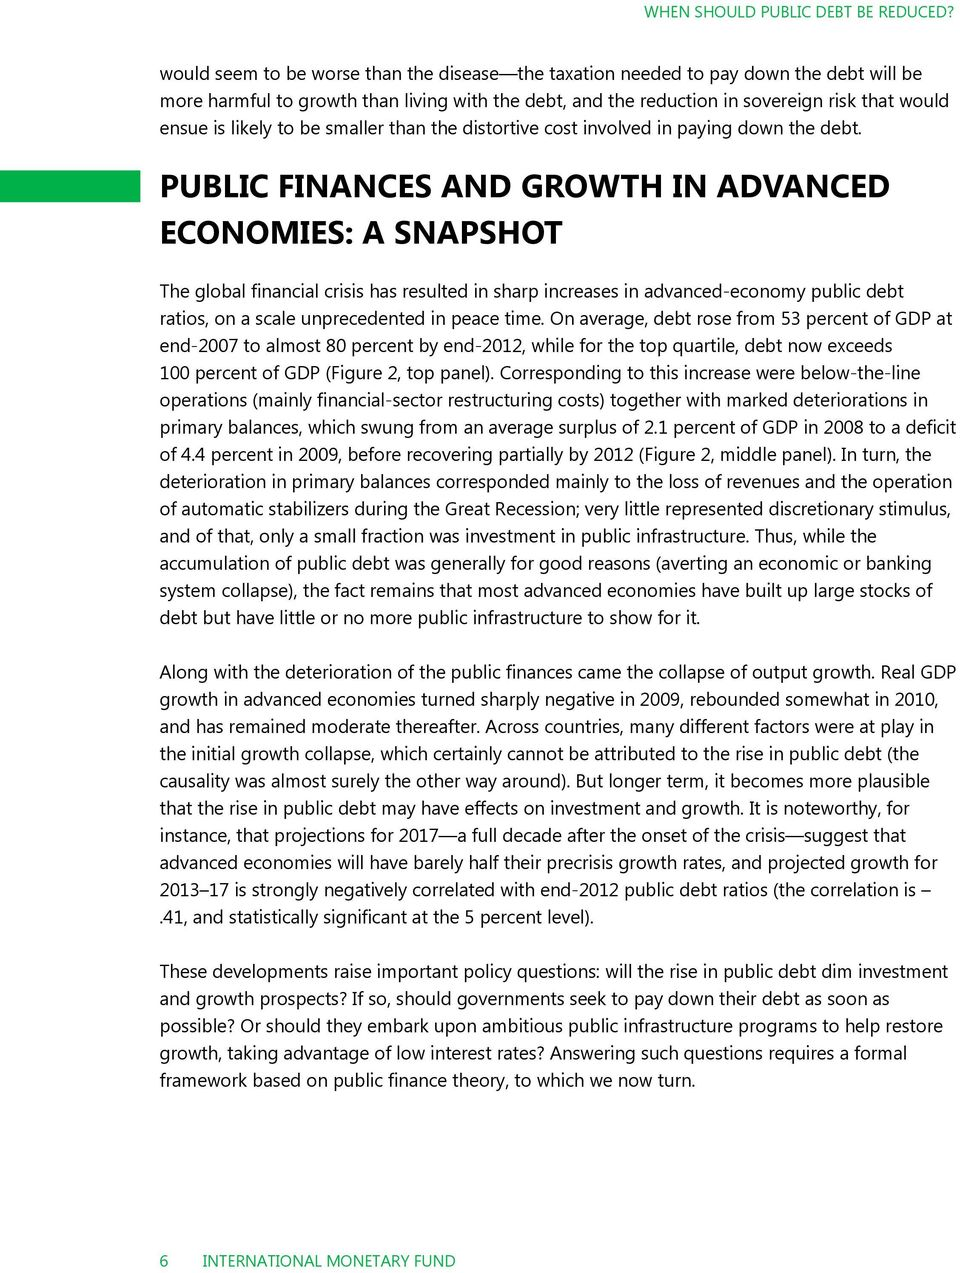 PUBLIC FINANCES AND GROWTH IN ADVANCED ECONOMIES: A SNAPSHOT The global financial crisis has resuled in sharp increases in advanced-economy public deb raios, on a scale unprecedened in peace ime.